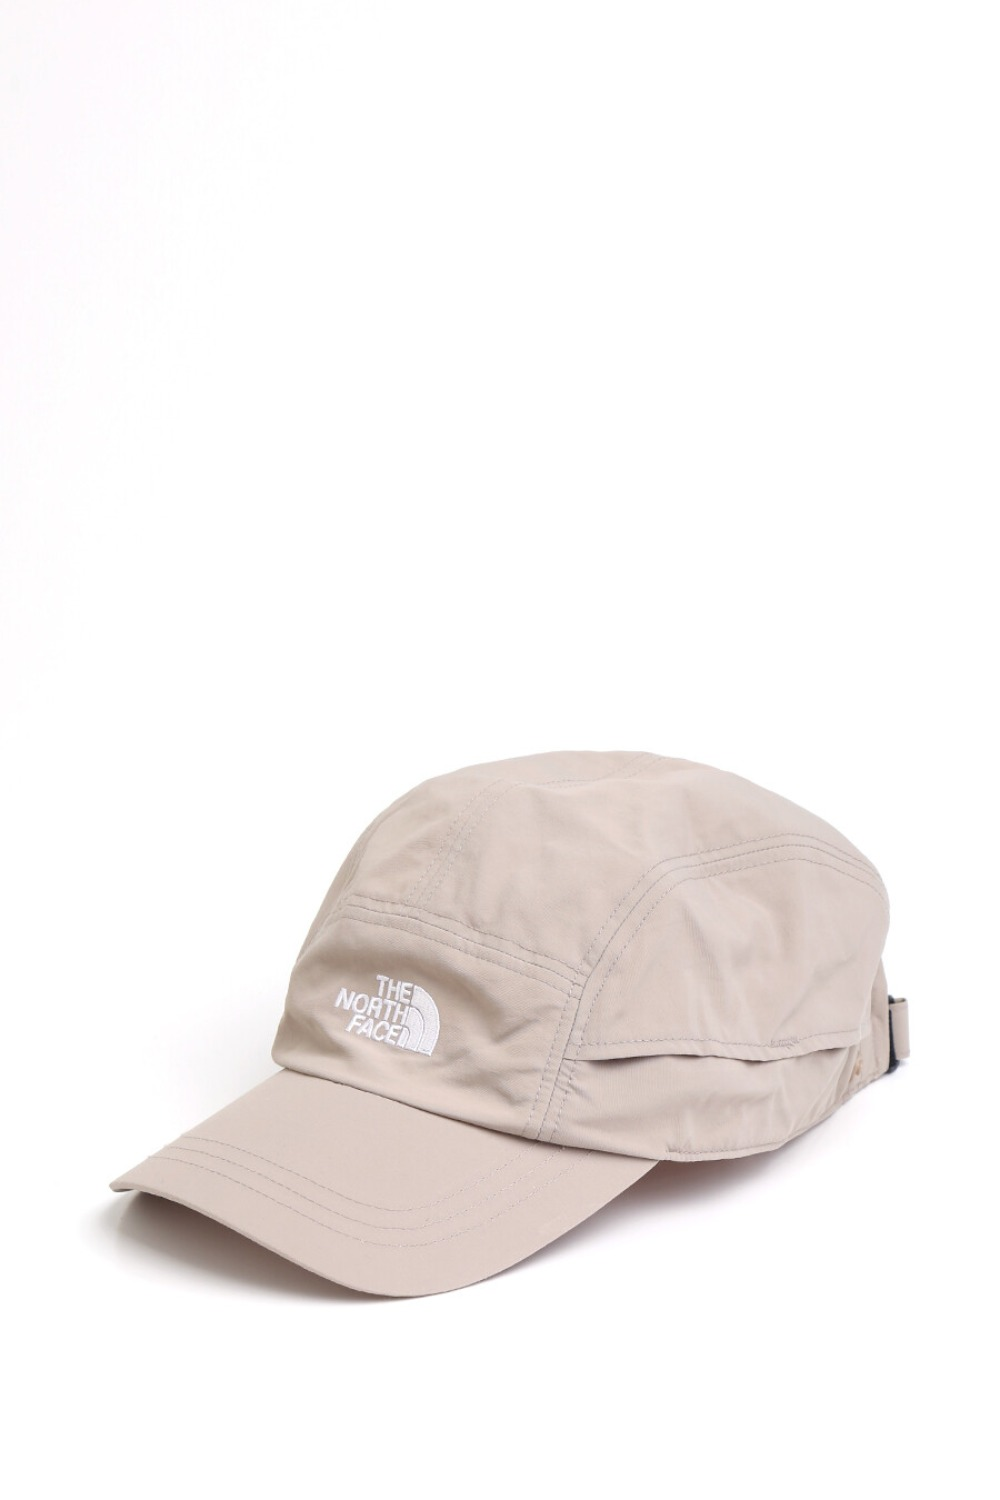 LIGHT SHIELD CAP BEIGE